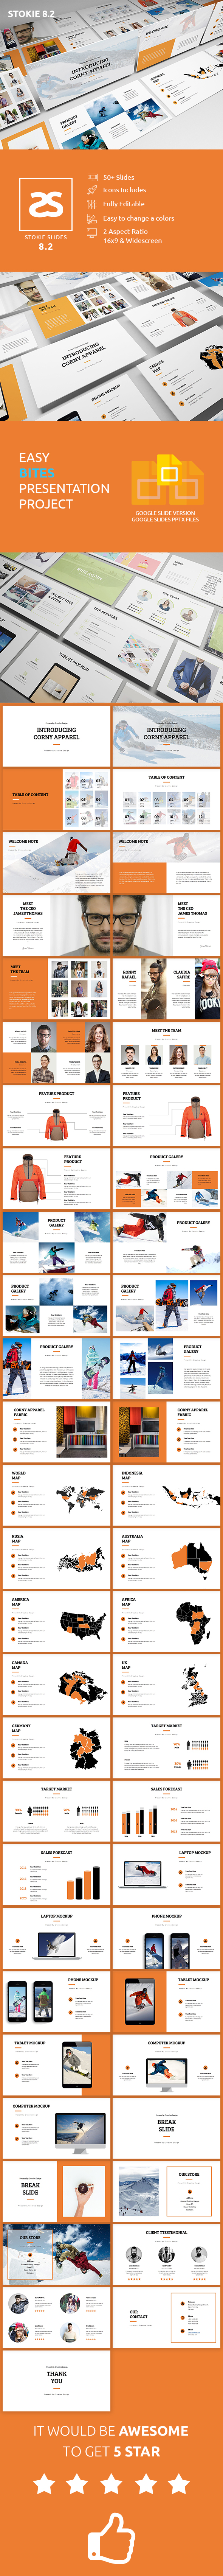 GraphicRiver Apparel Product Launching Google Slide 8.2 20872488